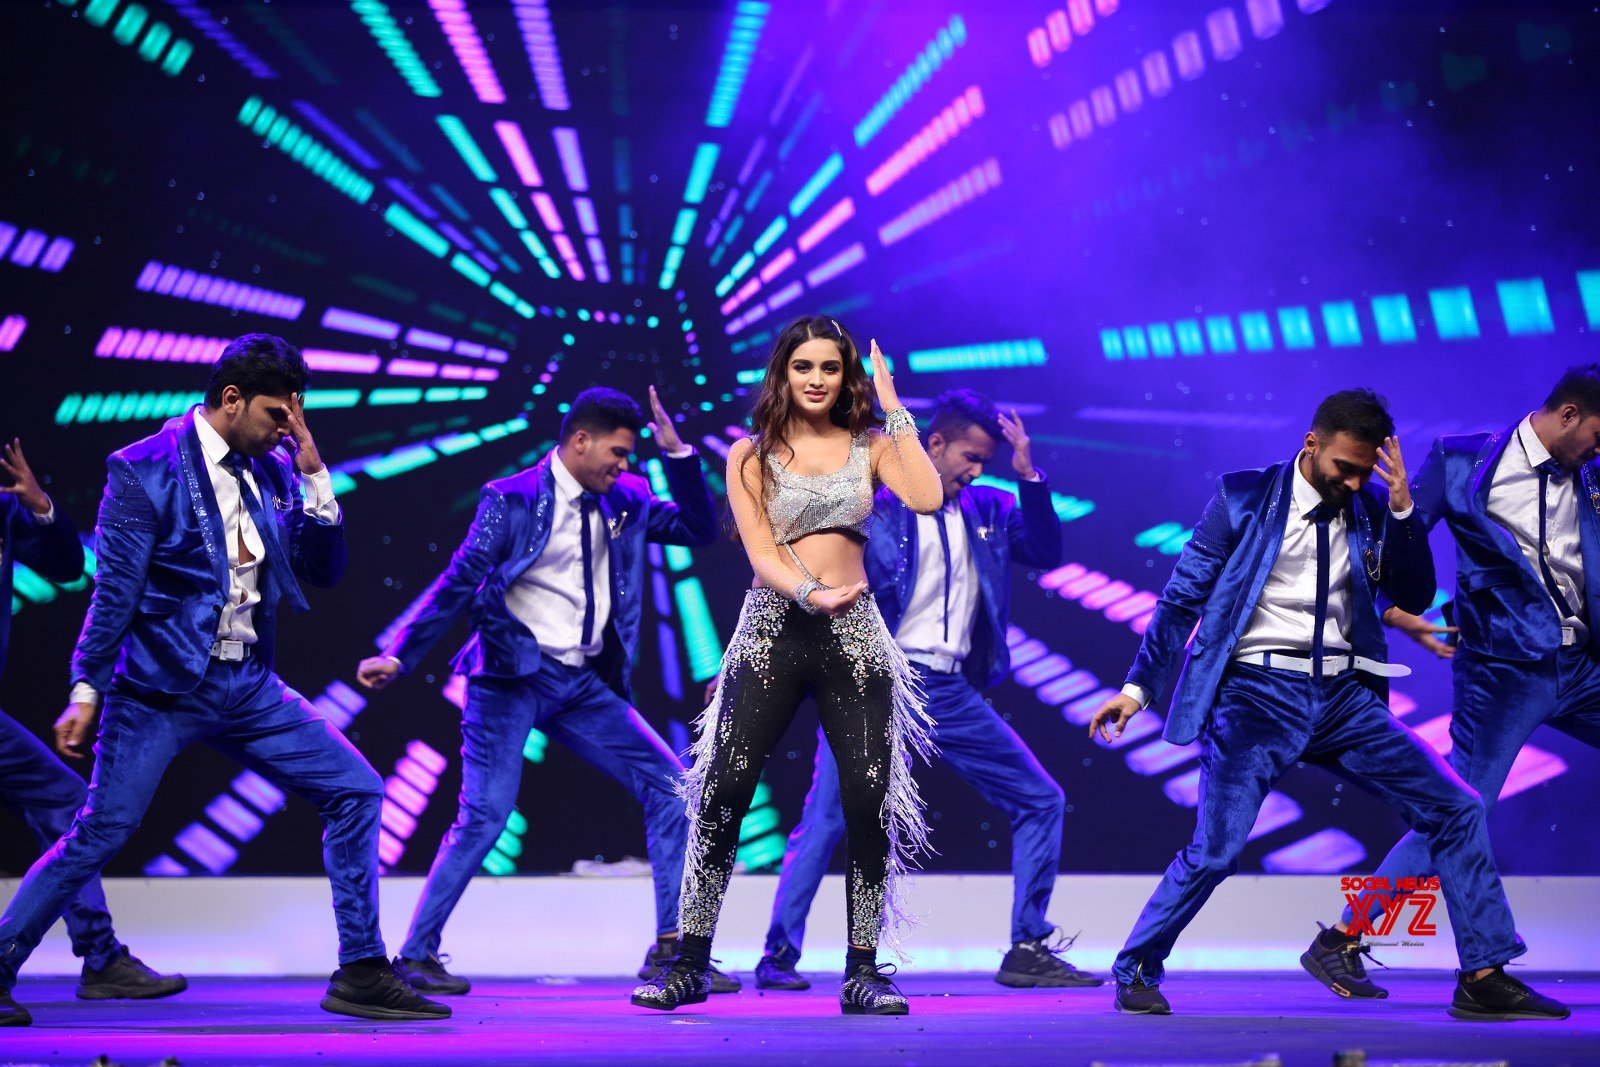 Actress Nidhhi Agerwal Dance Stills From SIIMA Awards 2019